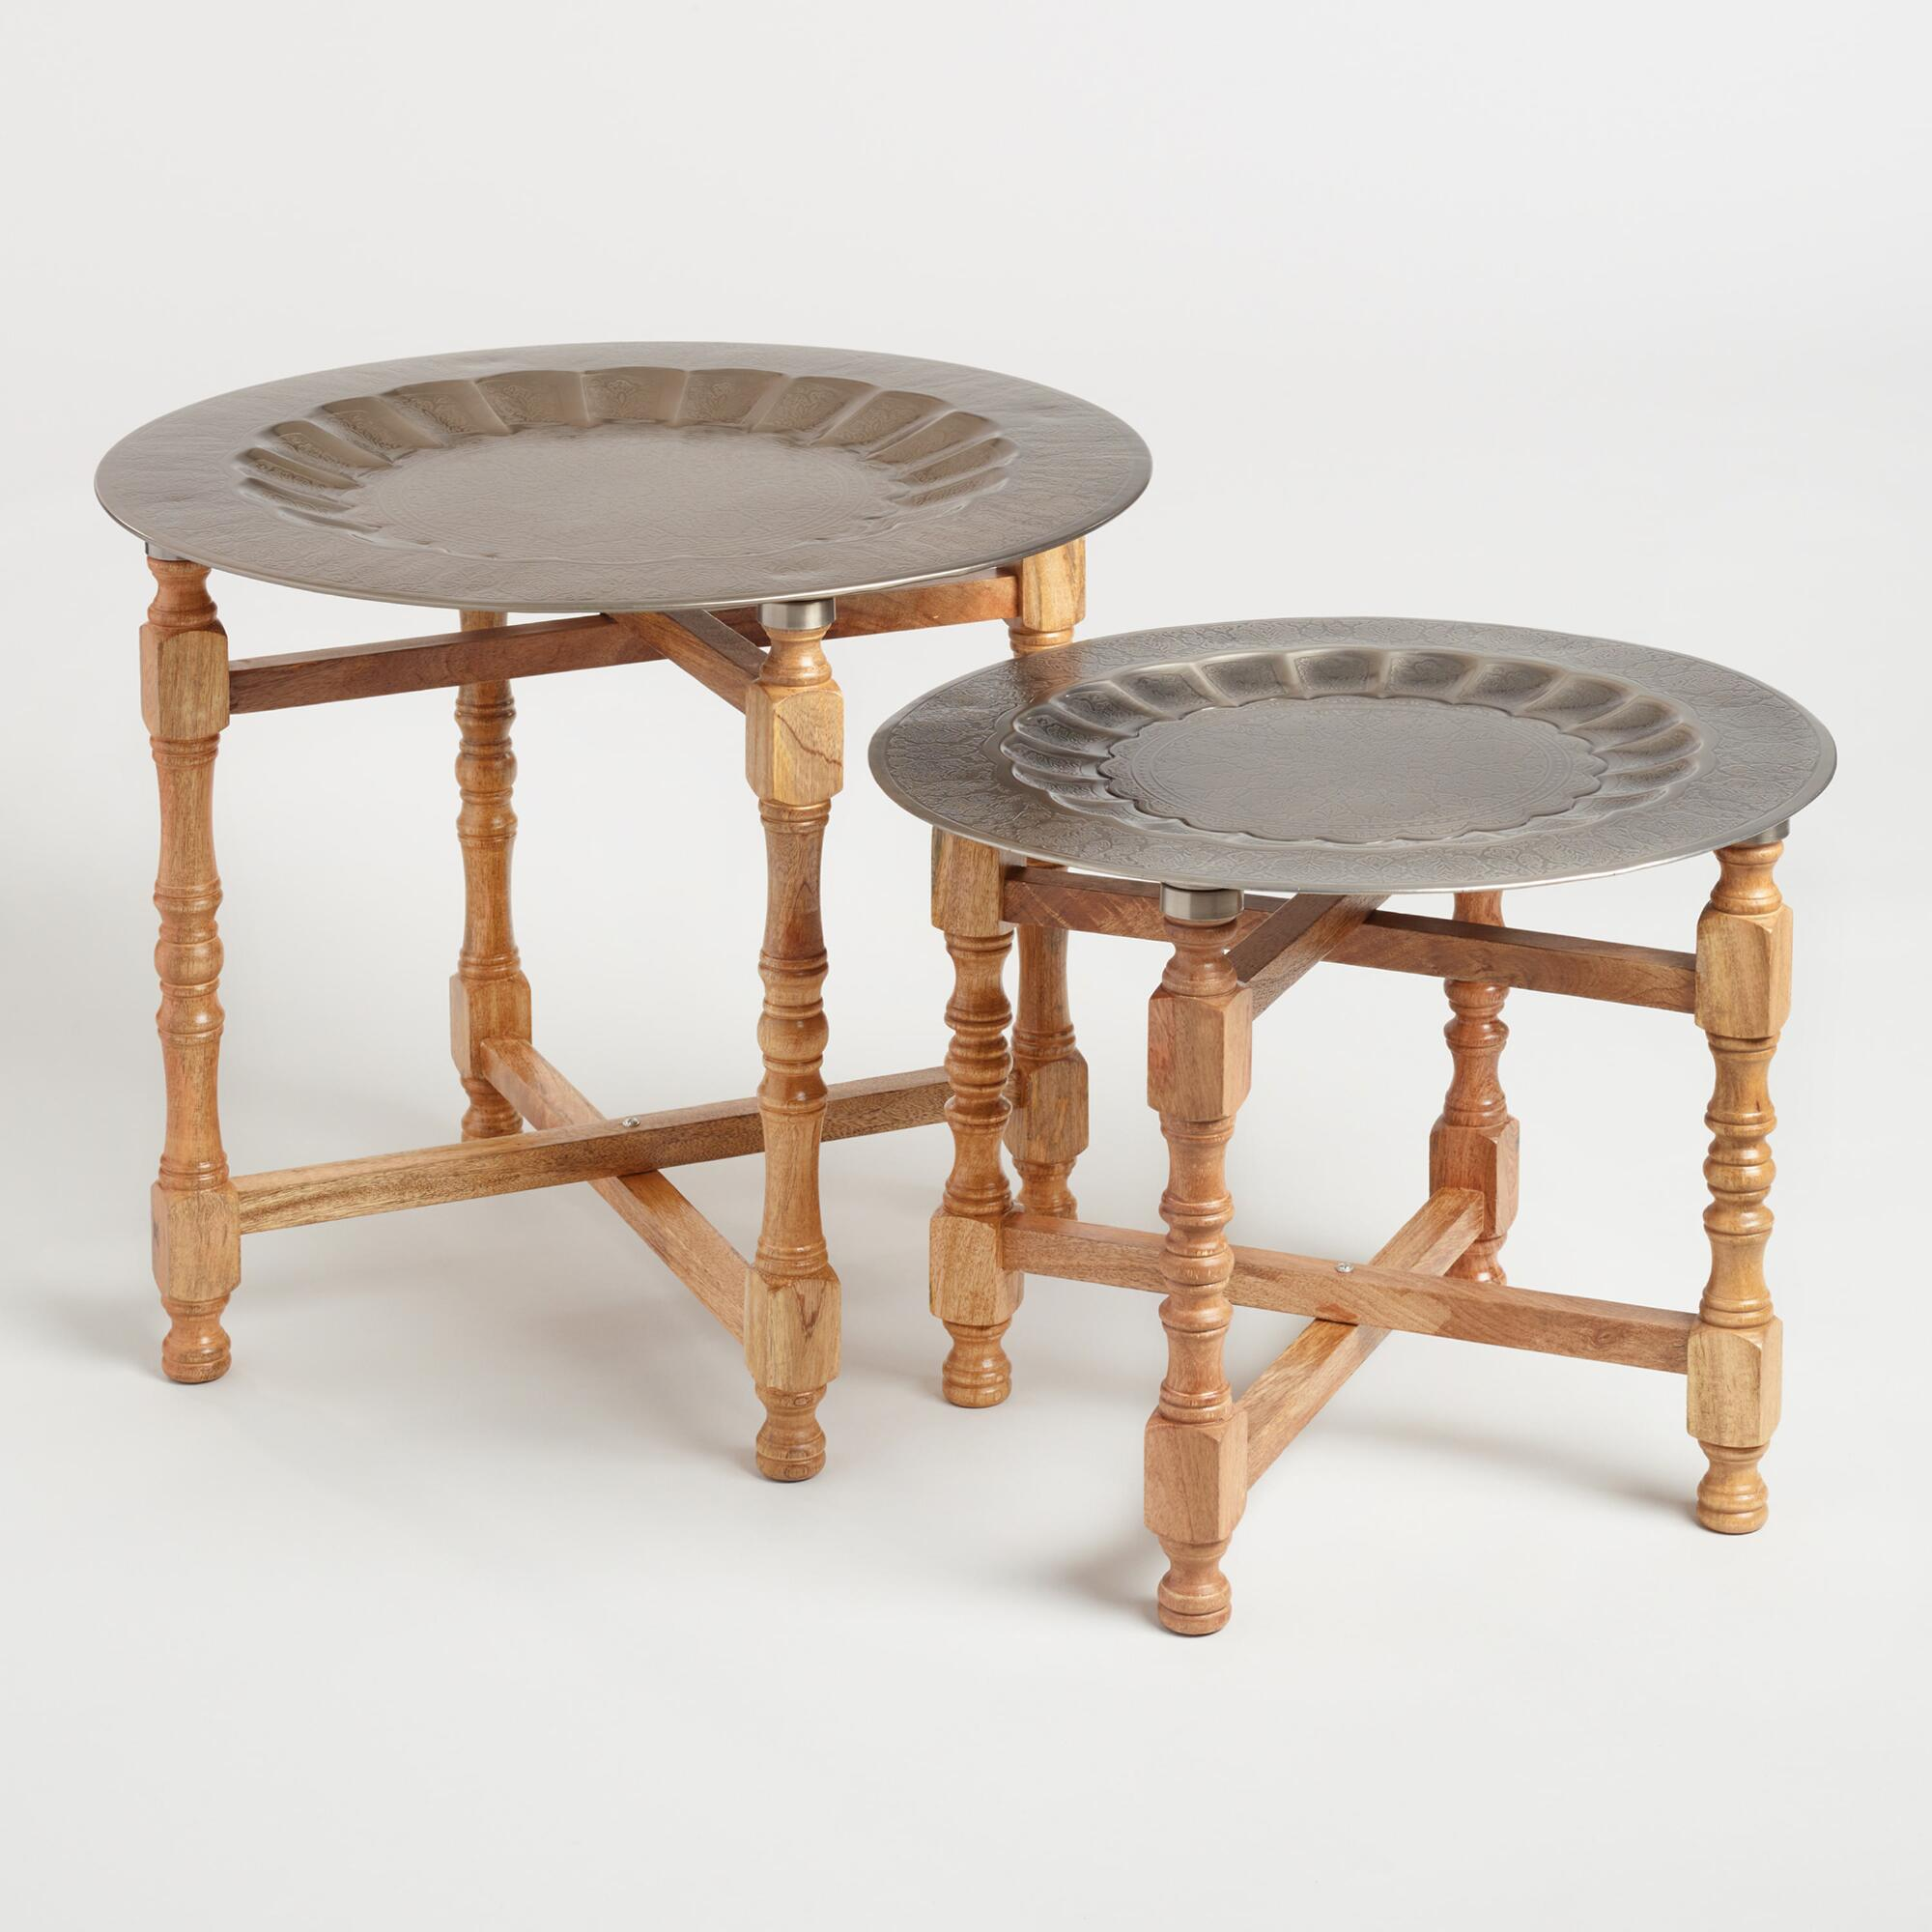 Metal and Wood Arya Table Set of 2. Mango Wood Table   World Market